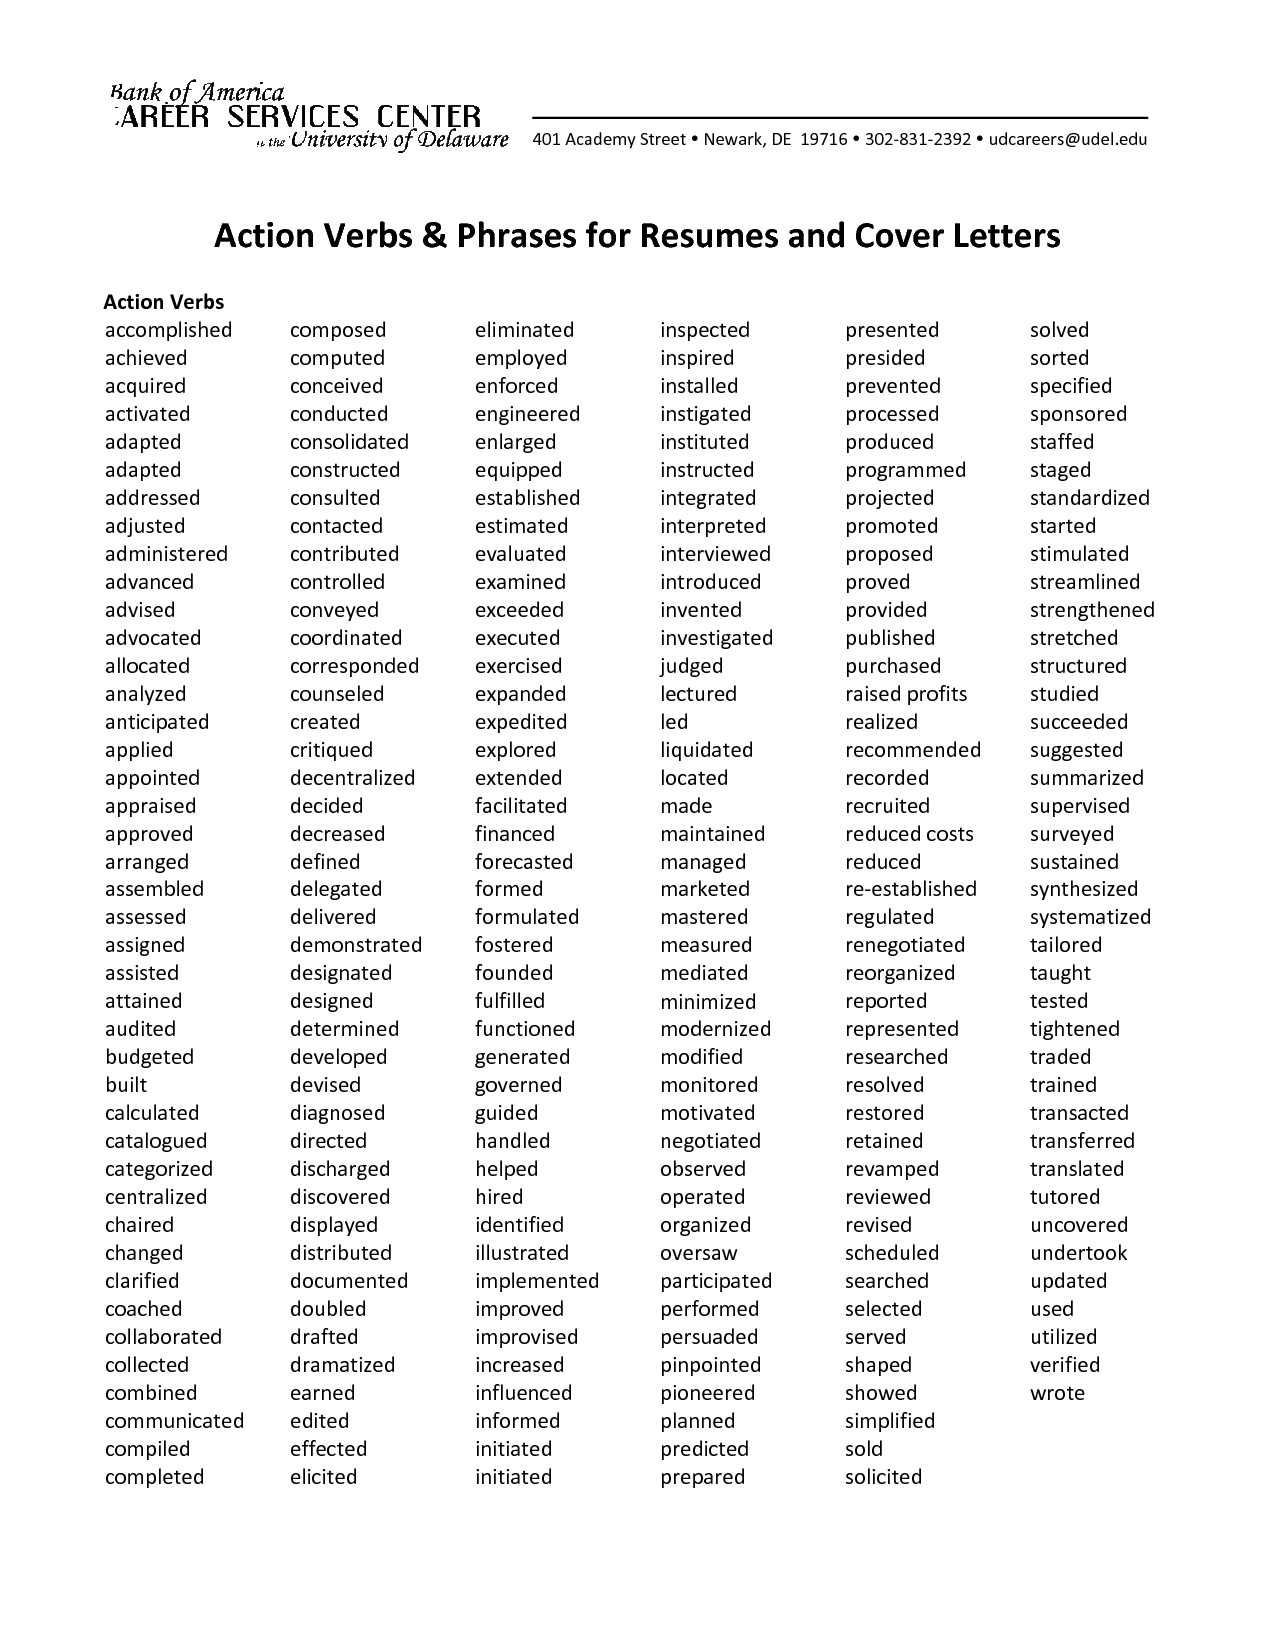 action verbs phrases for resumes and cover letters  with